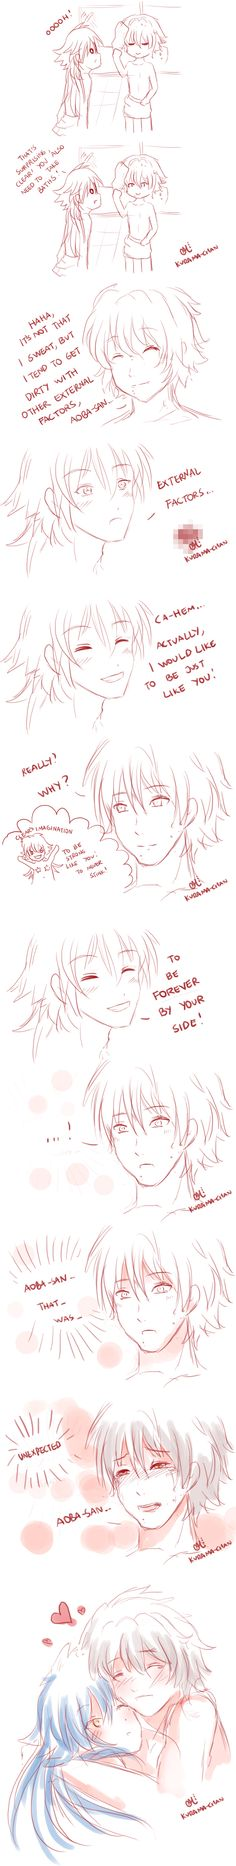 -- DMMD comic: Clear's body -- by Kurama-chan on DeviantArt